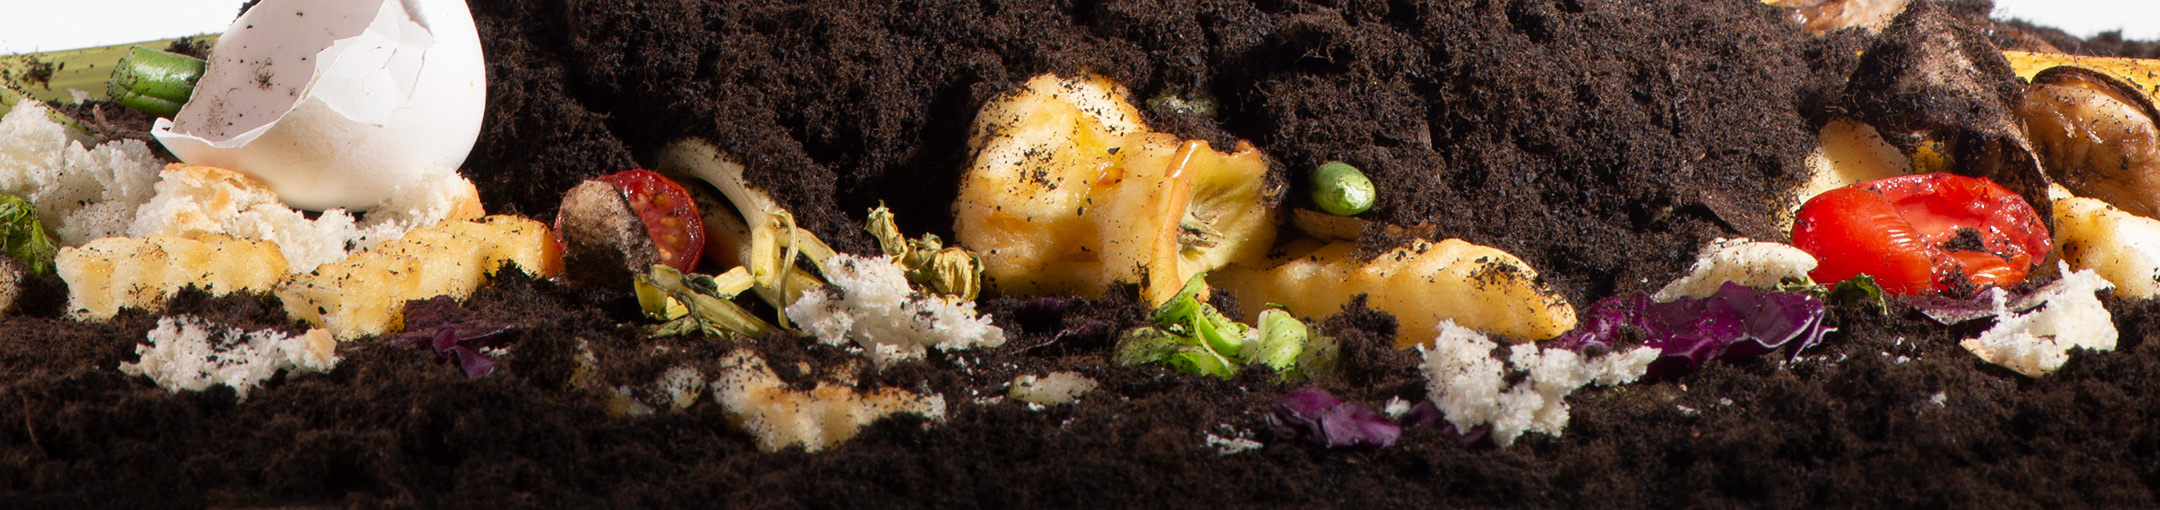 Food waste scraps and dirt.